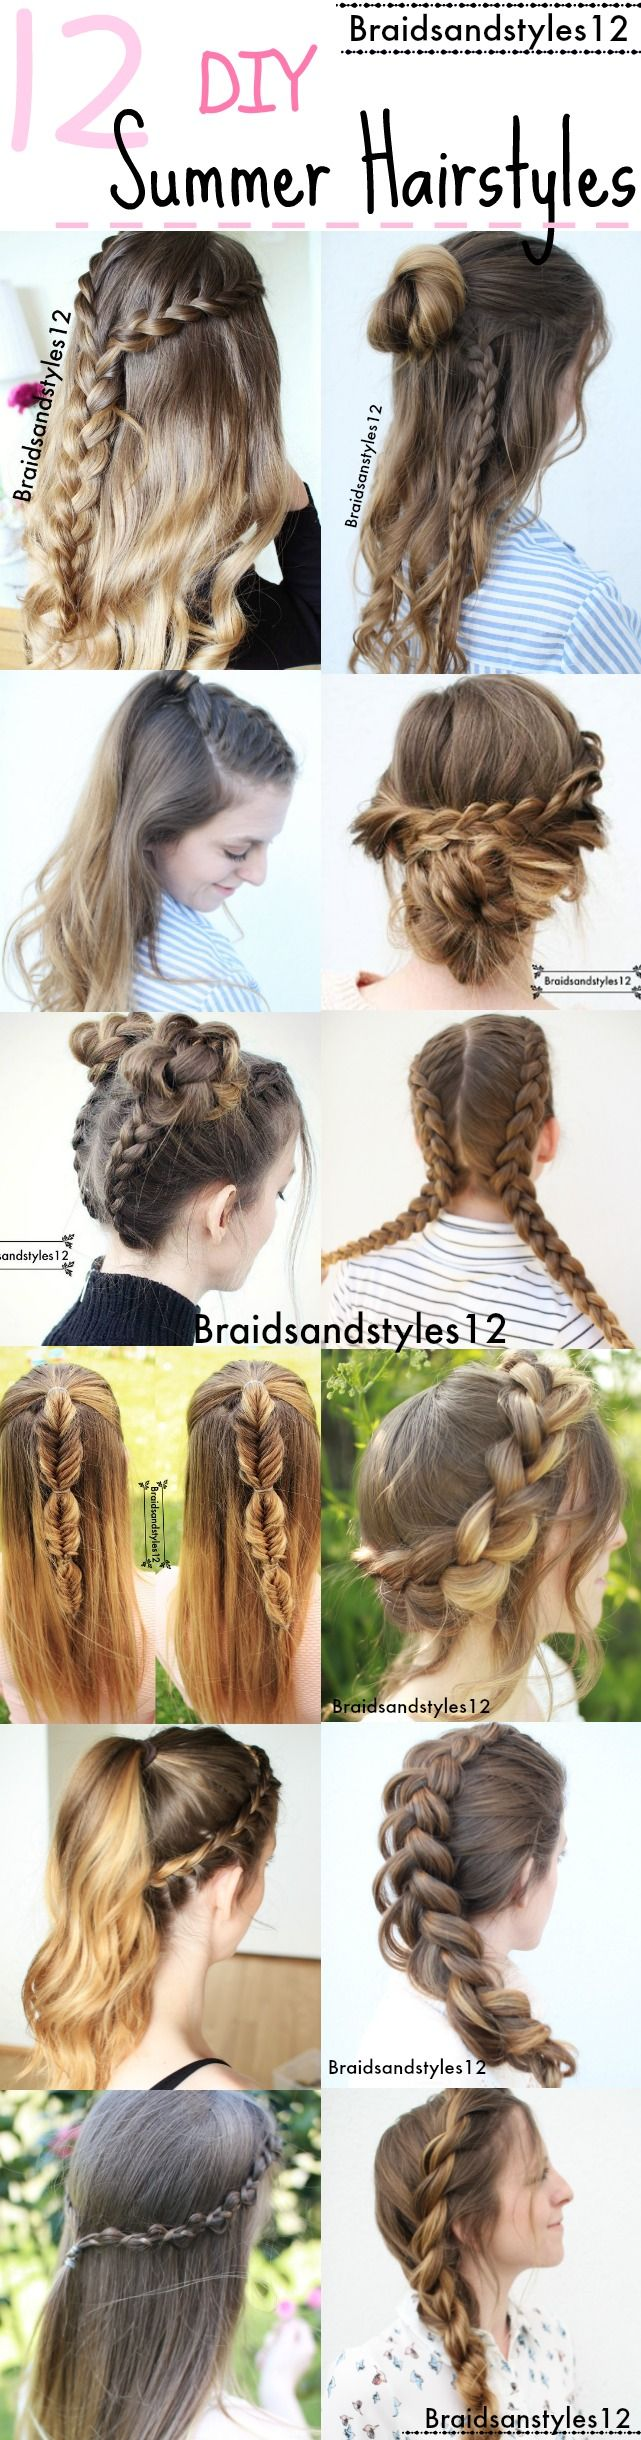 12 Gorgeous DIY Summer Hairstyle Ideas by Braidsanstyles12. Beachy Hairstyles by Braidsandstyles12.